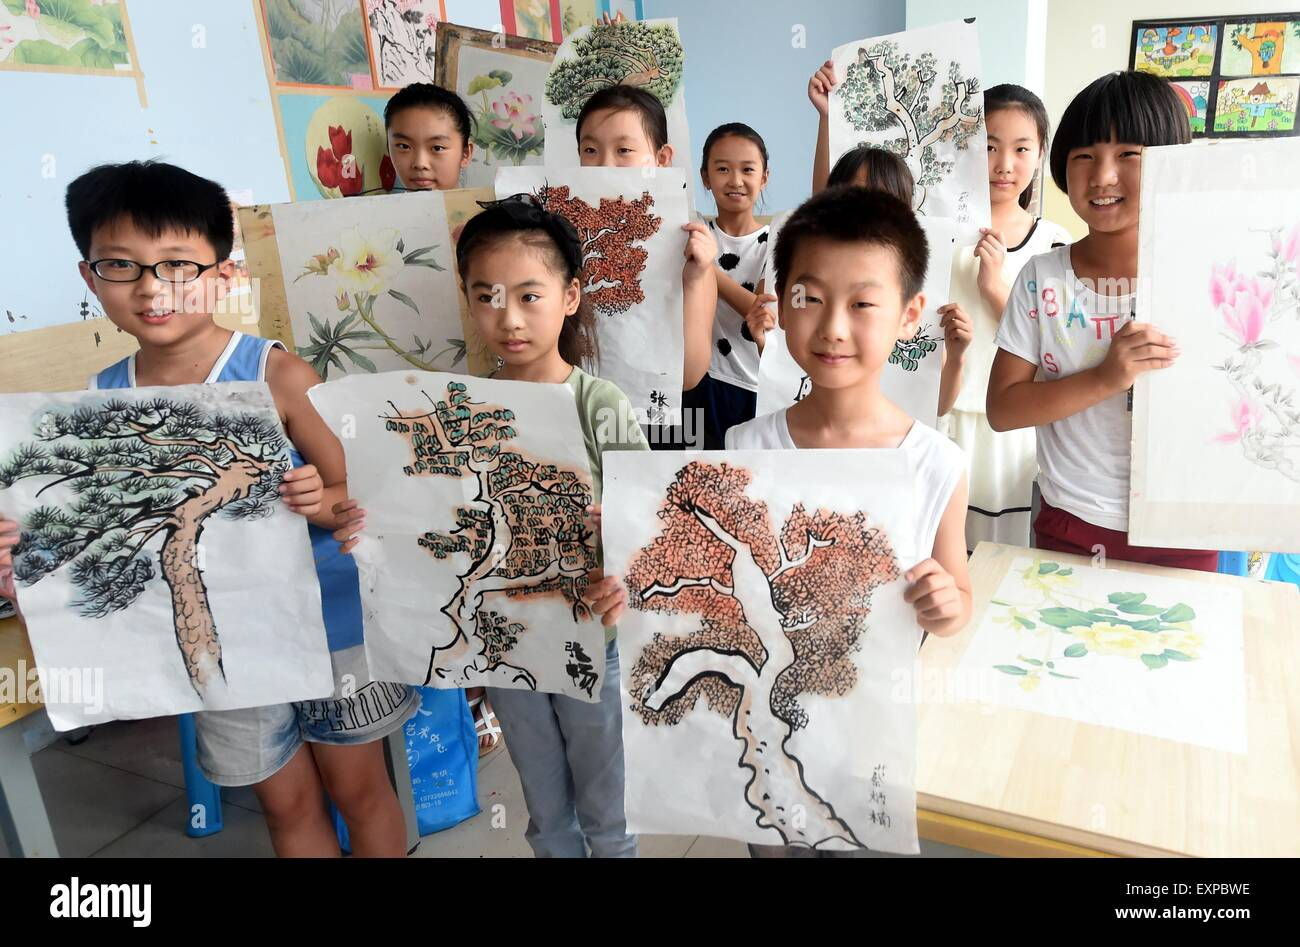 (150716) -- BAZHOU, July 16, 2015 (Xinhua) -- Children show their paintings at an interest class in Shengfang Township - Stock Image